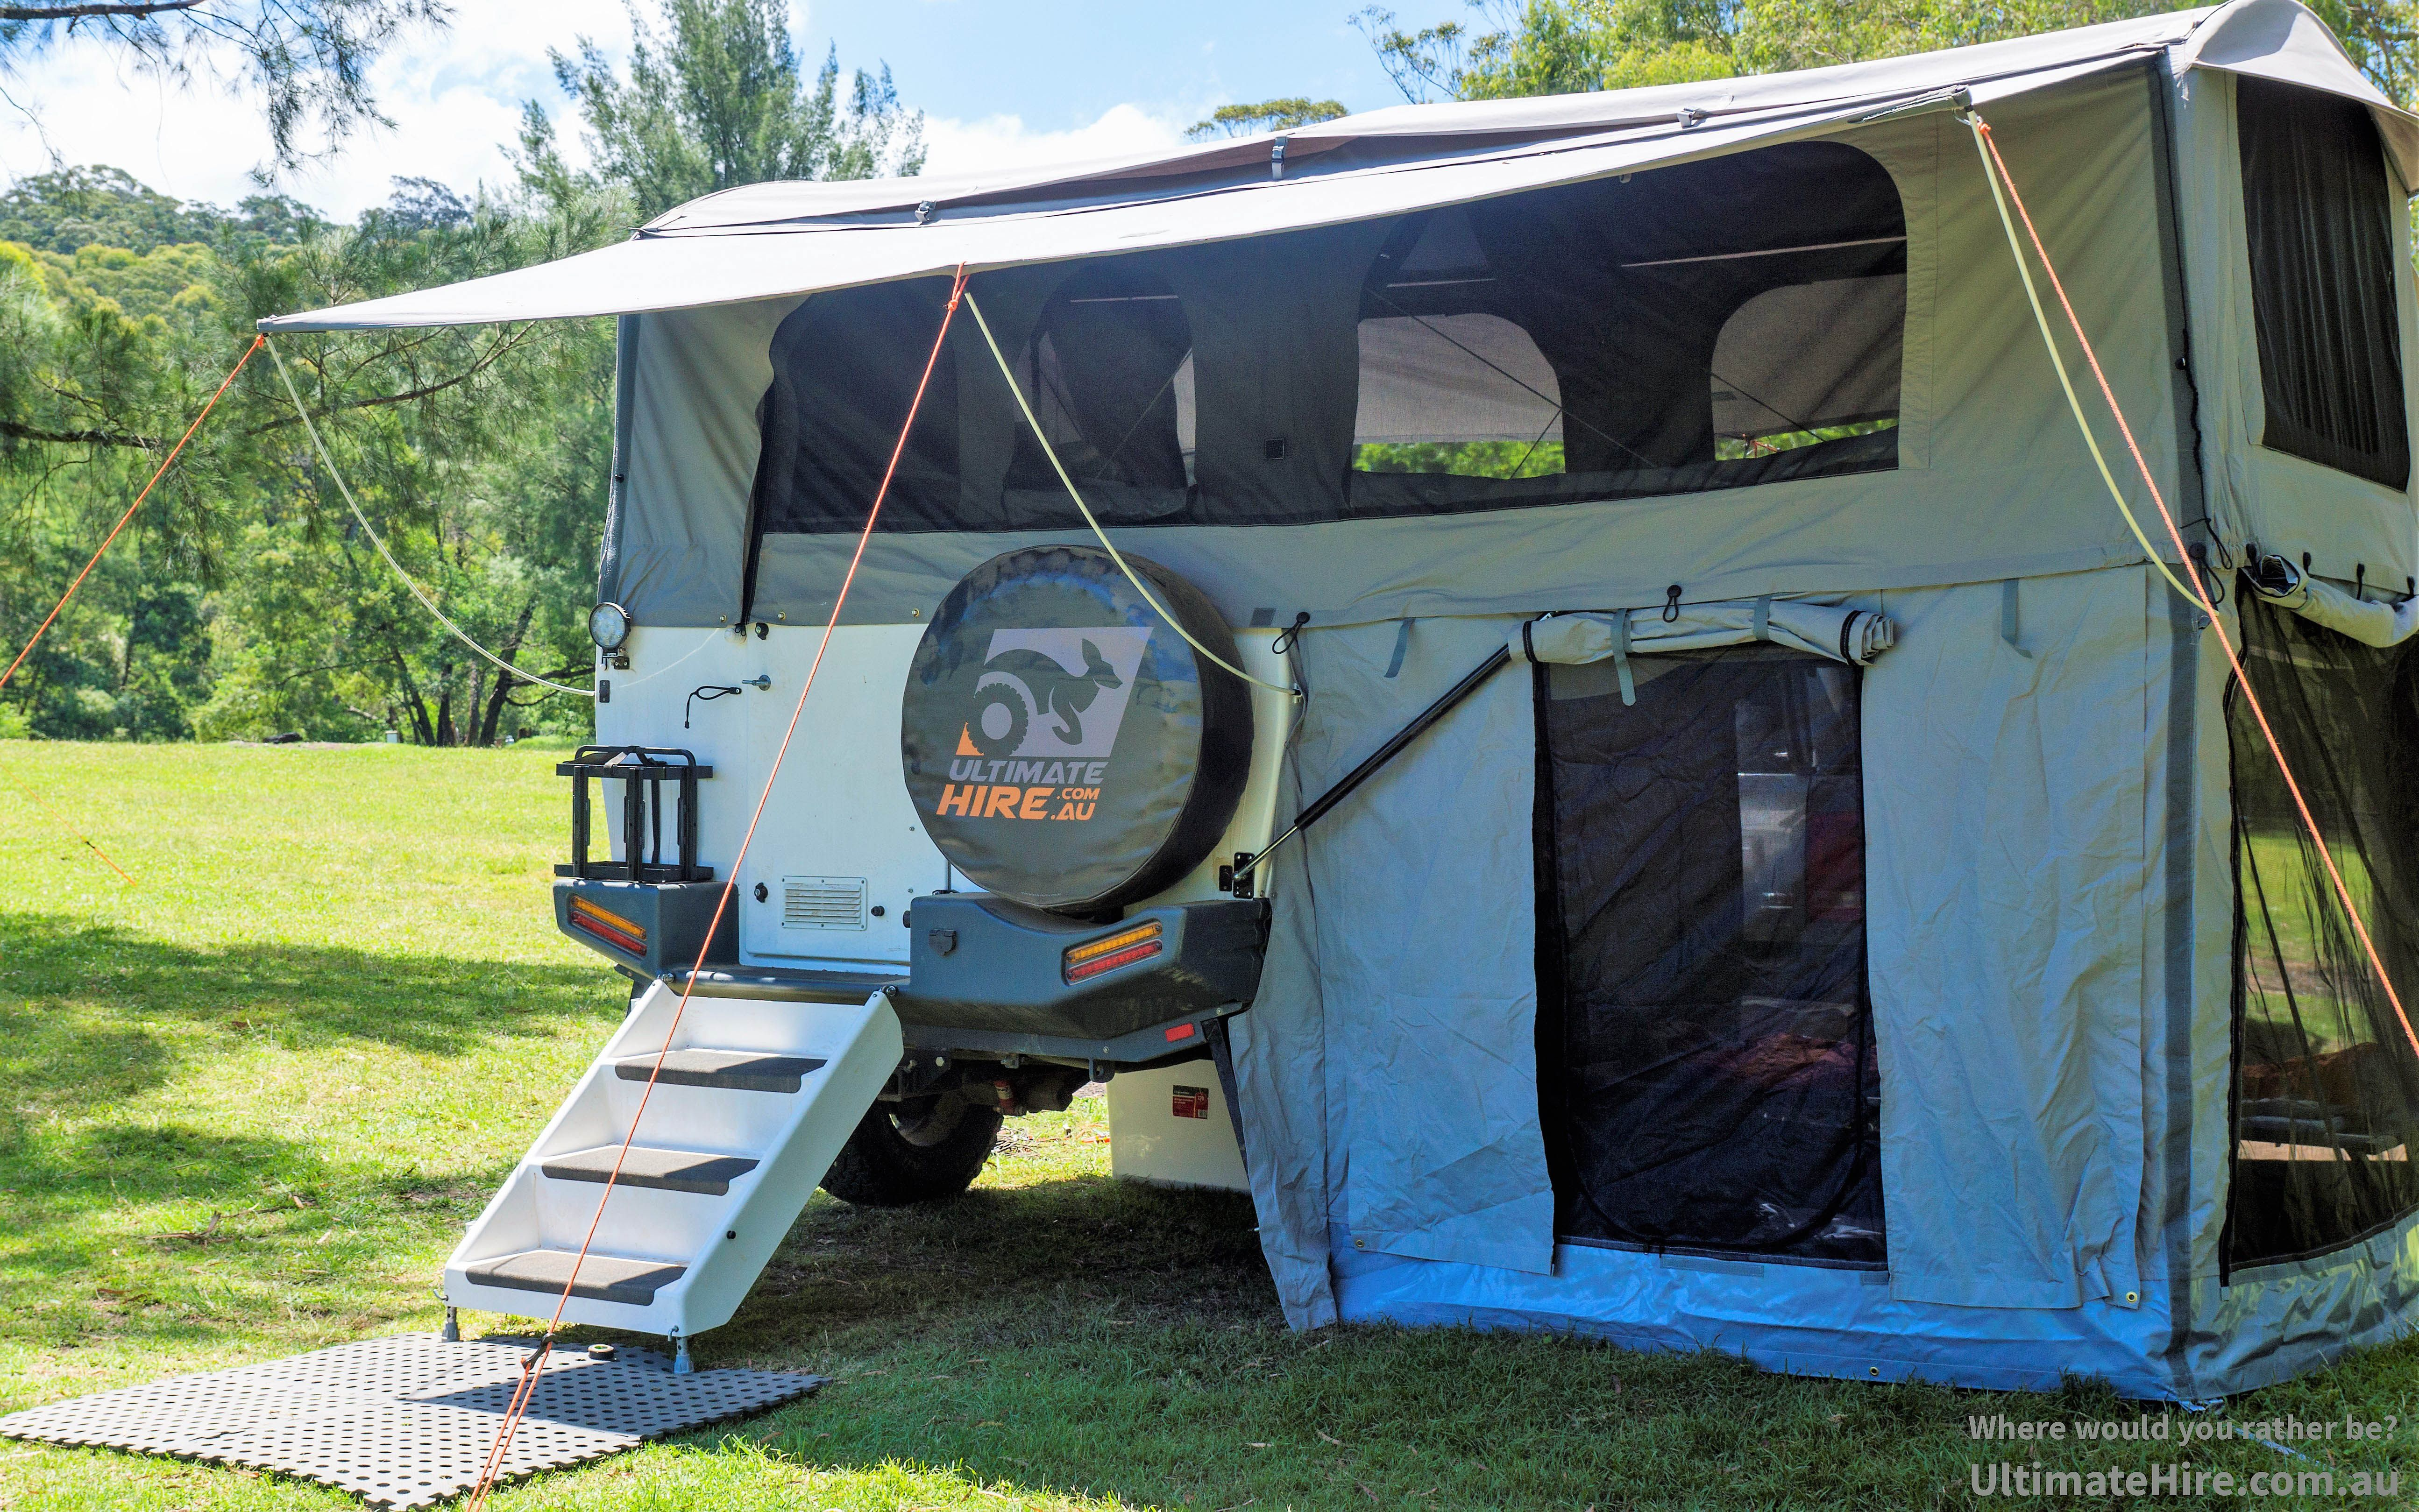 Ultimate Hire Is A Premium Camping Hire Company This Is The Ultimate Xplor Gt Sleeps Up To 6 Camping Camping Hacks Camping Equipment